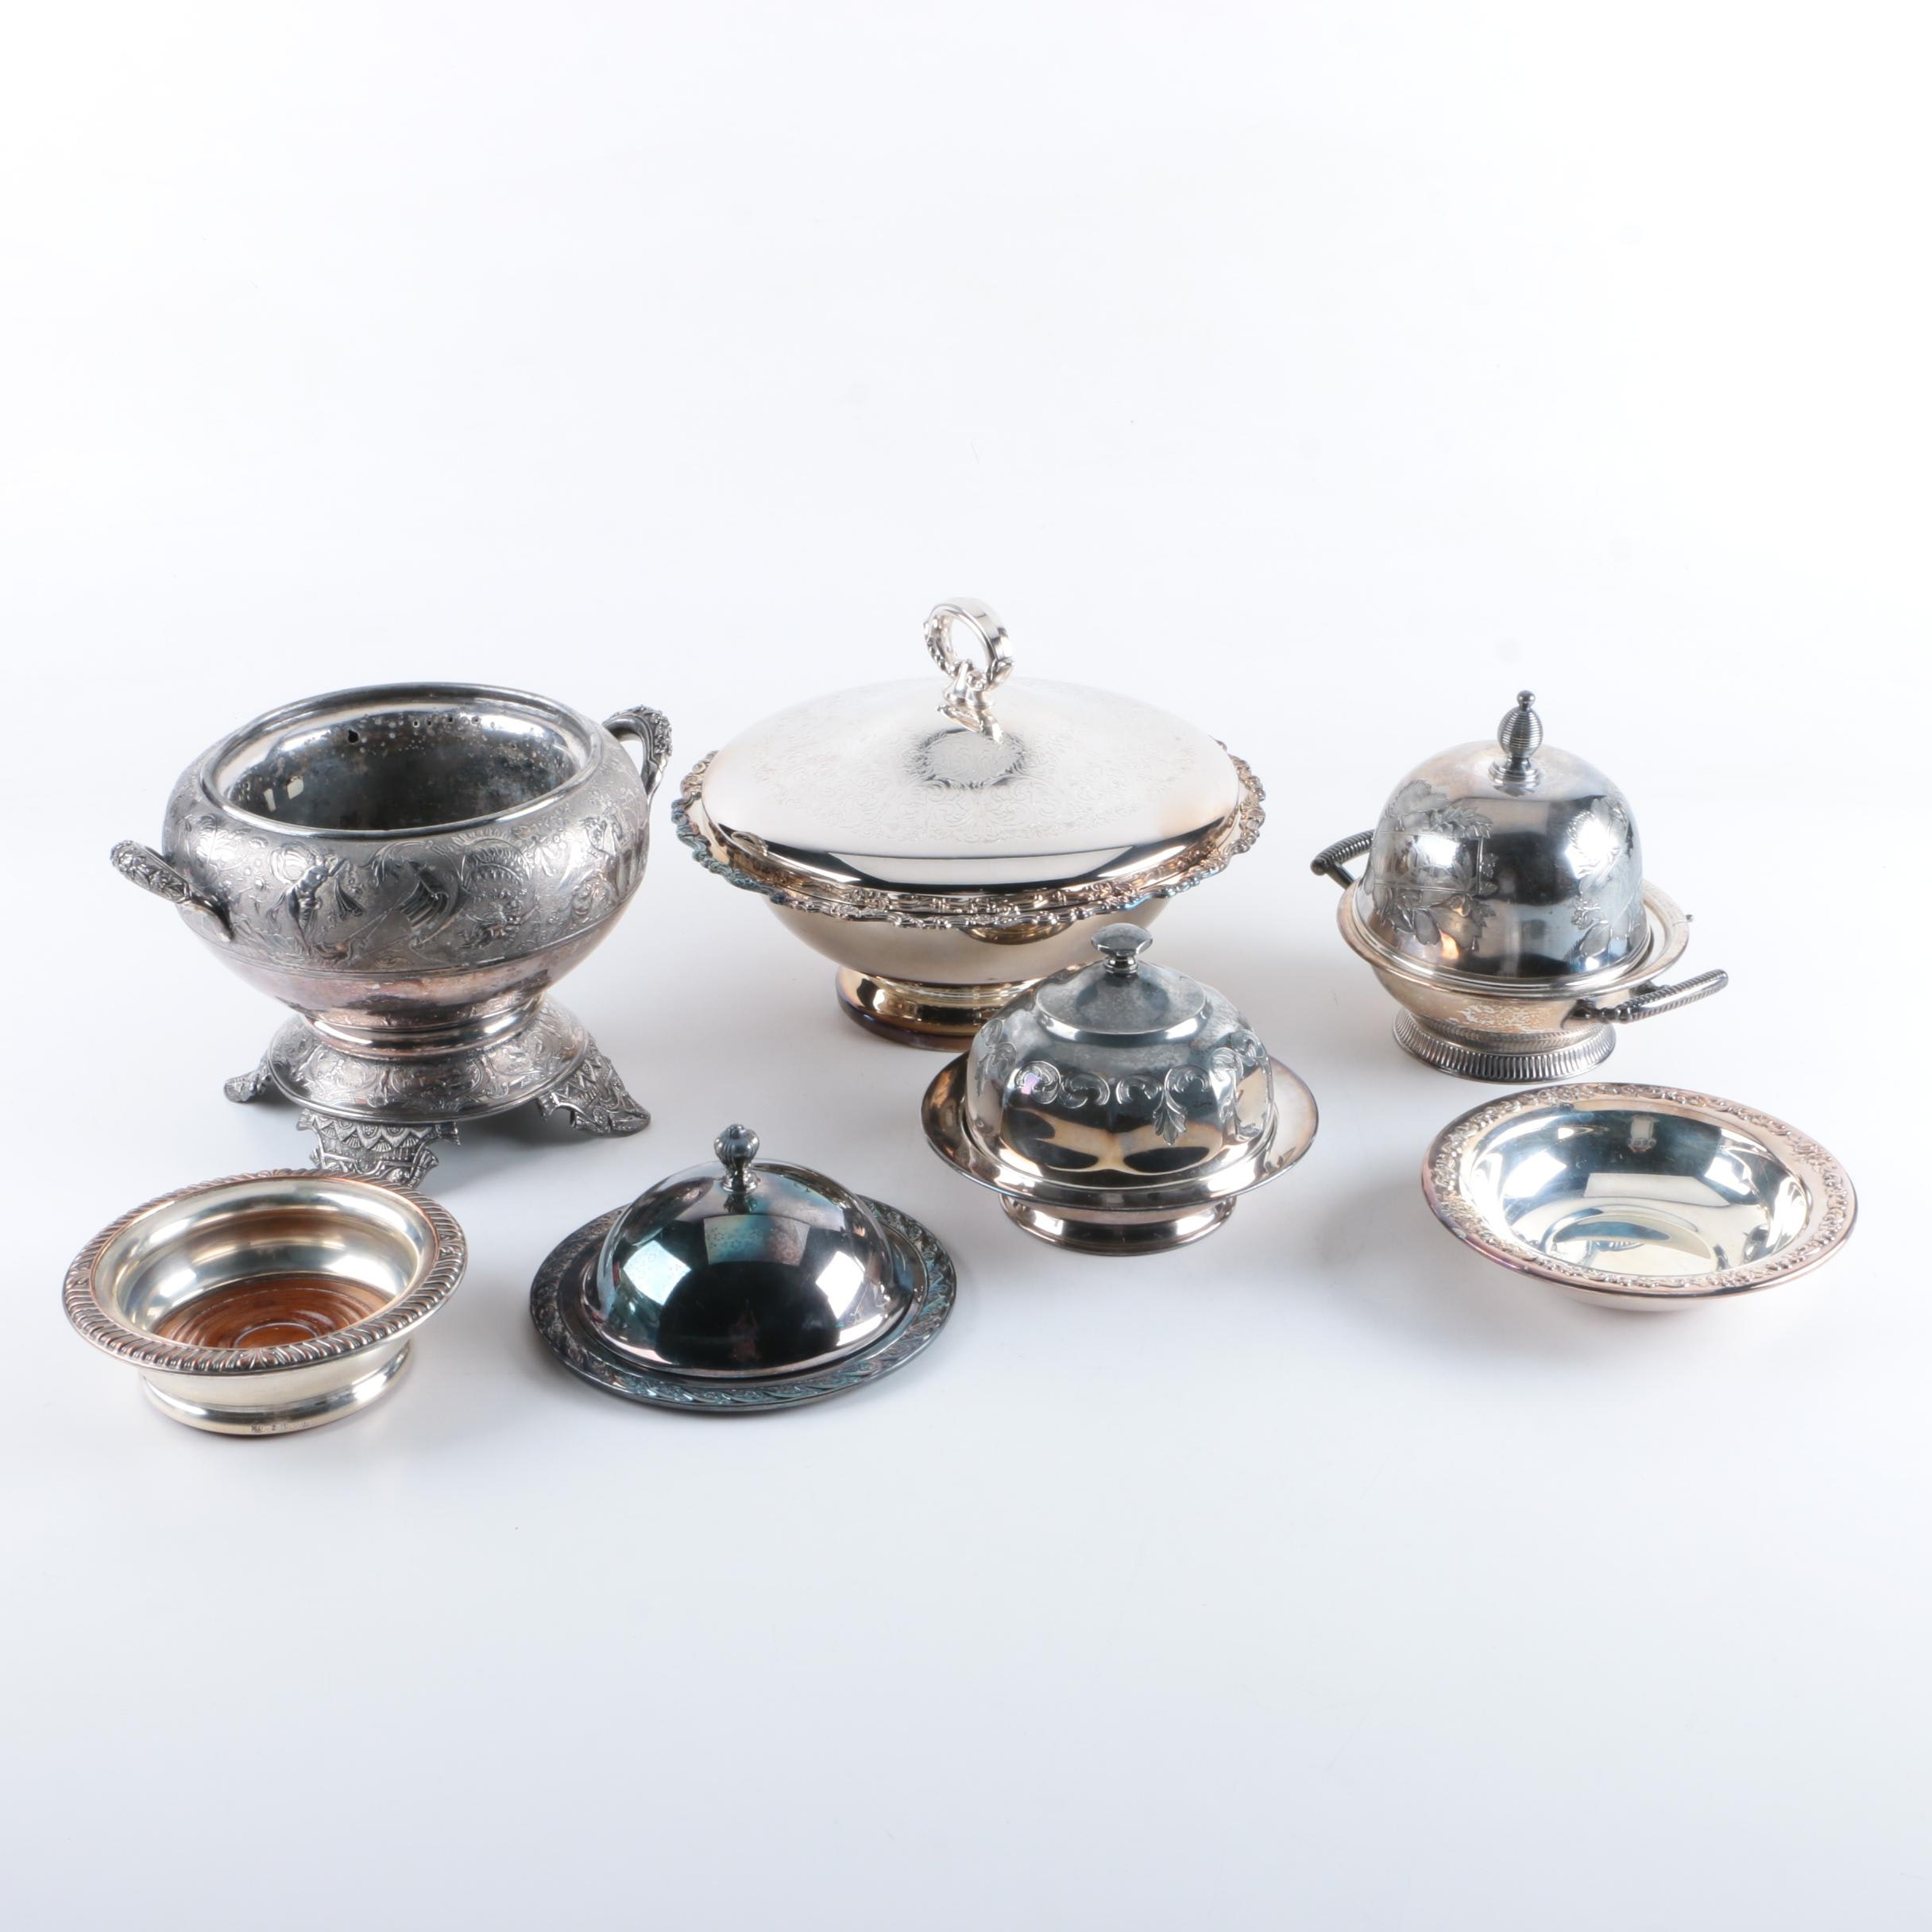 Simpson, Hall, Miller & Co Silver Plate Covered Dish and Assorted Serveware